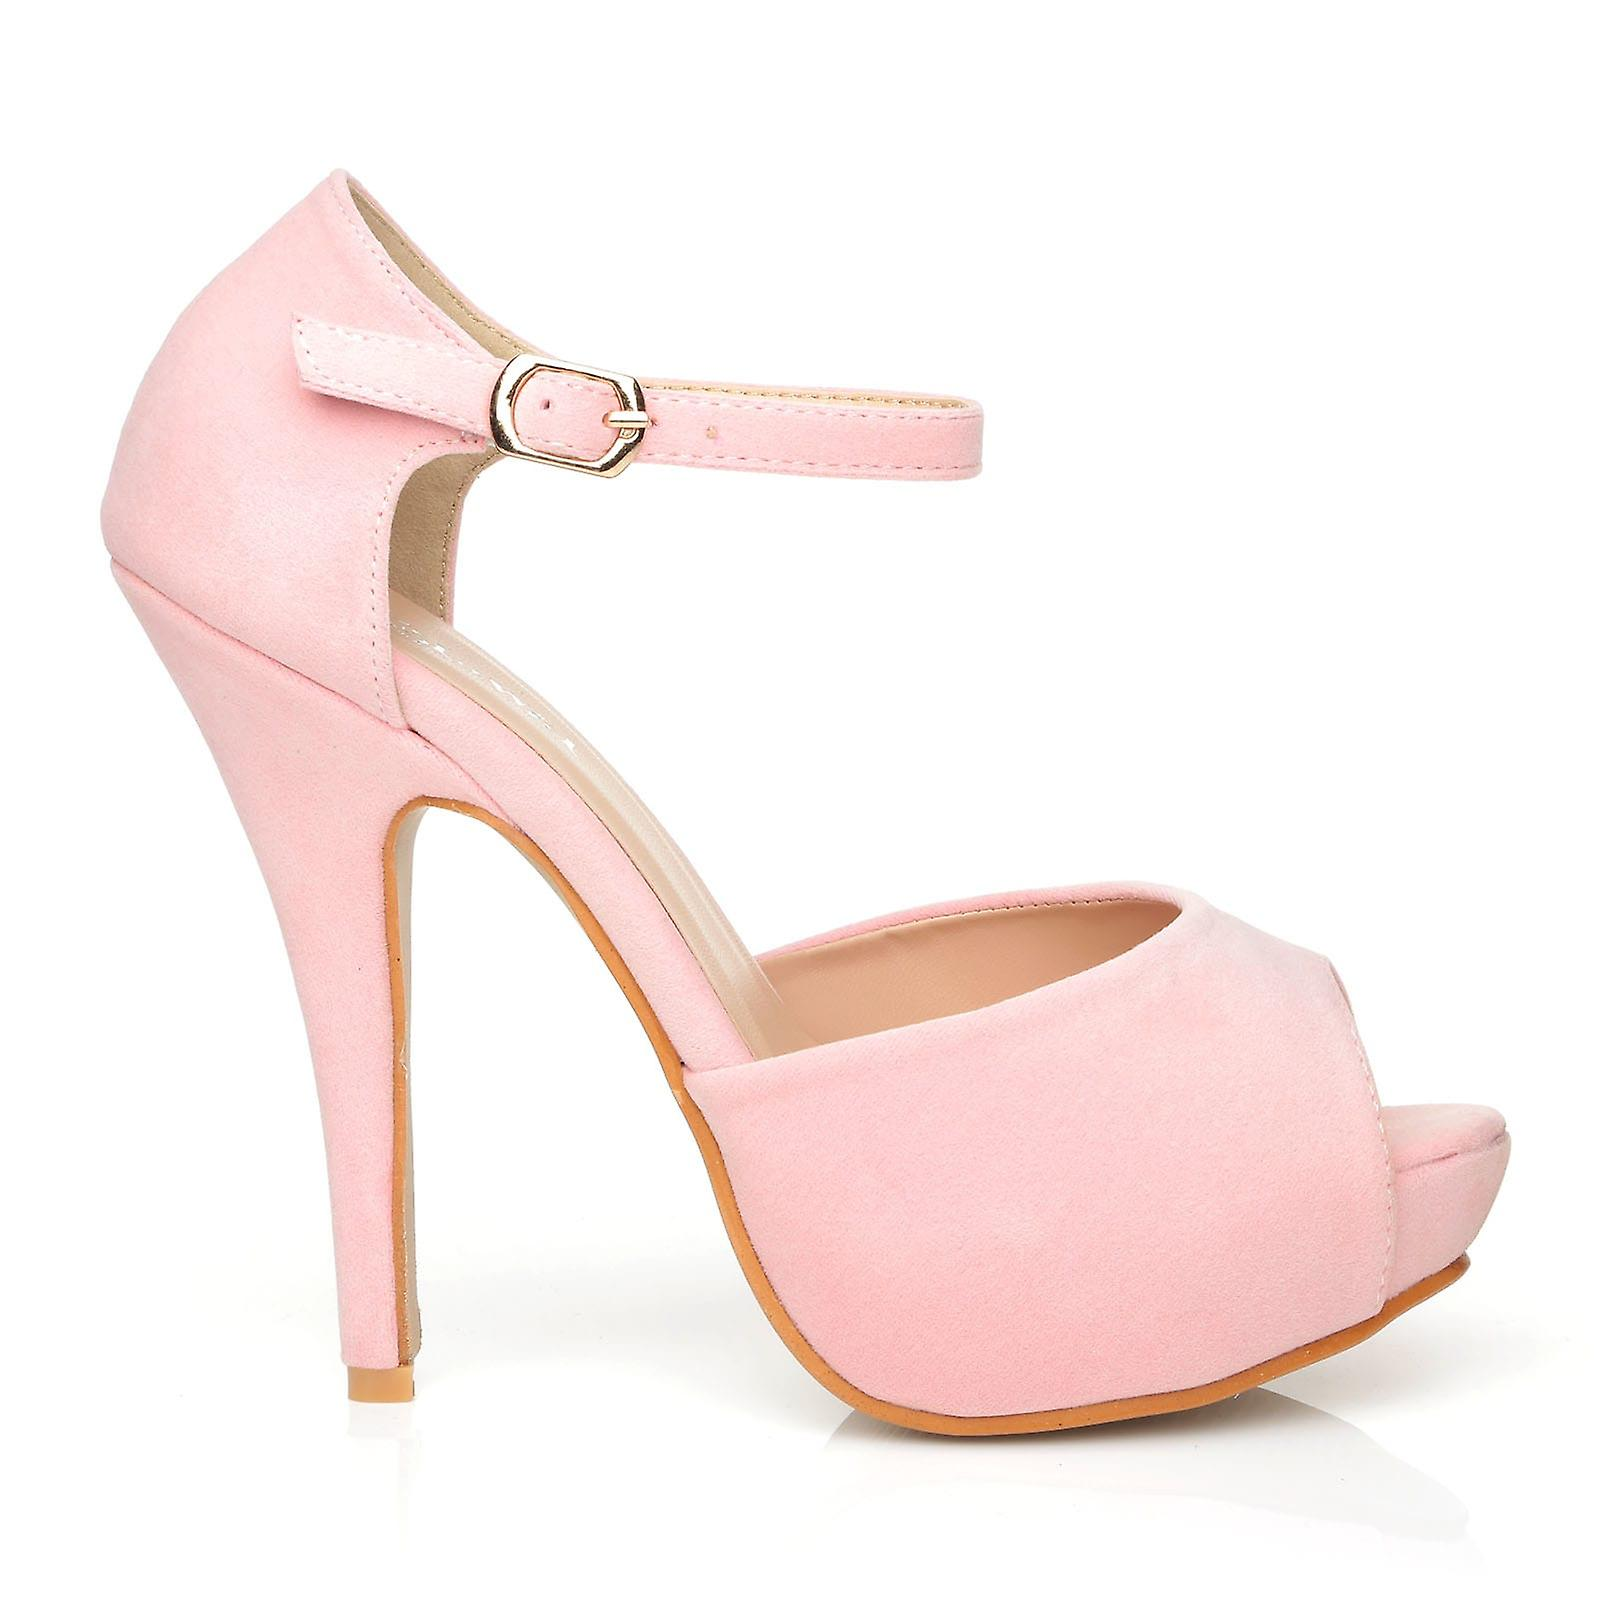 a176a70cbf0 LONDON Baby Pink Faux Suede Ankle Strap Platform Peep Toe High Heels ...